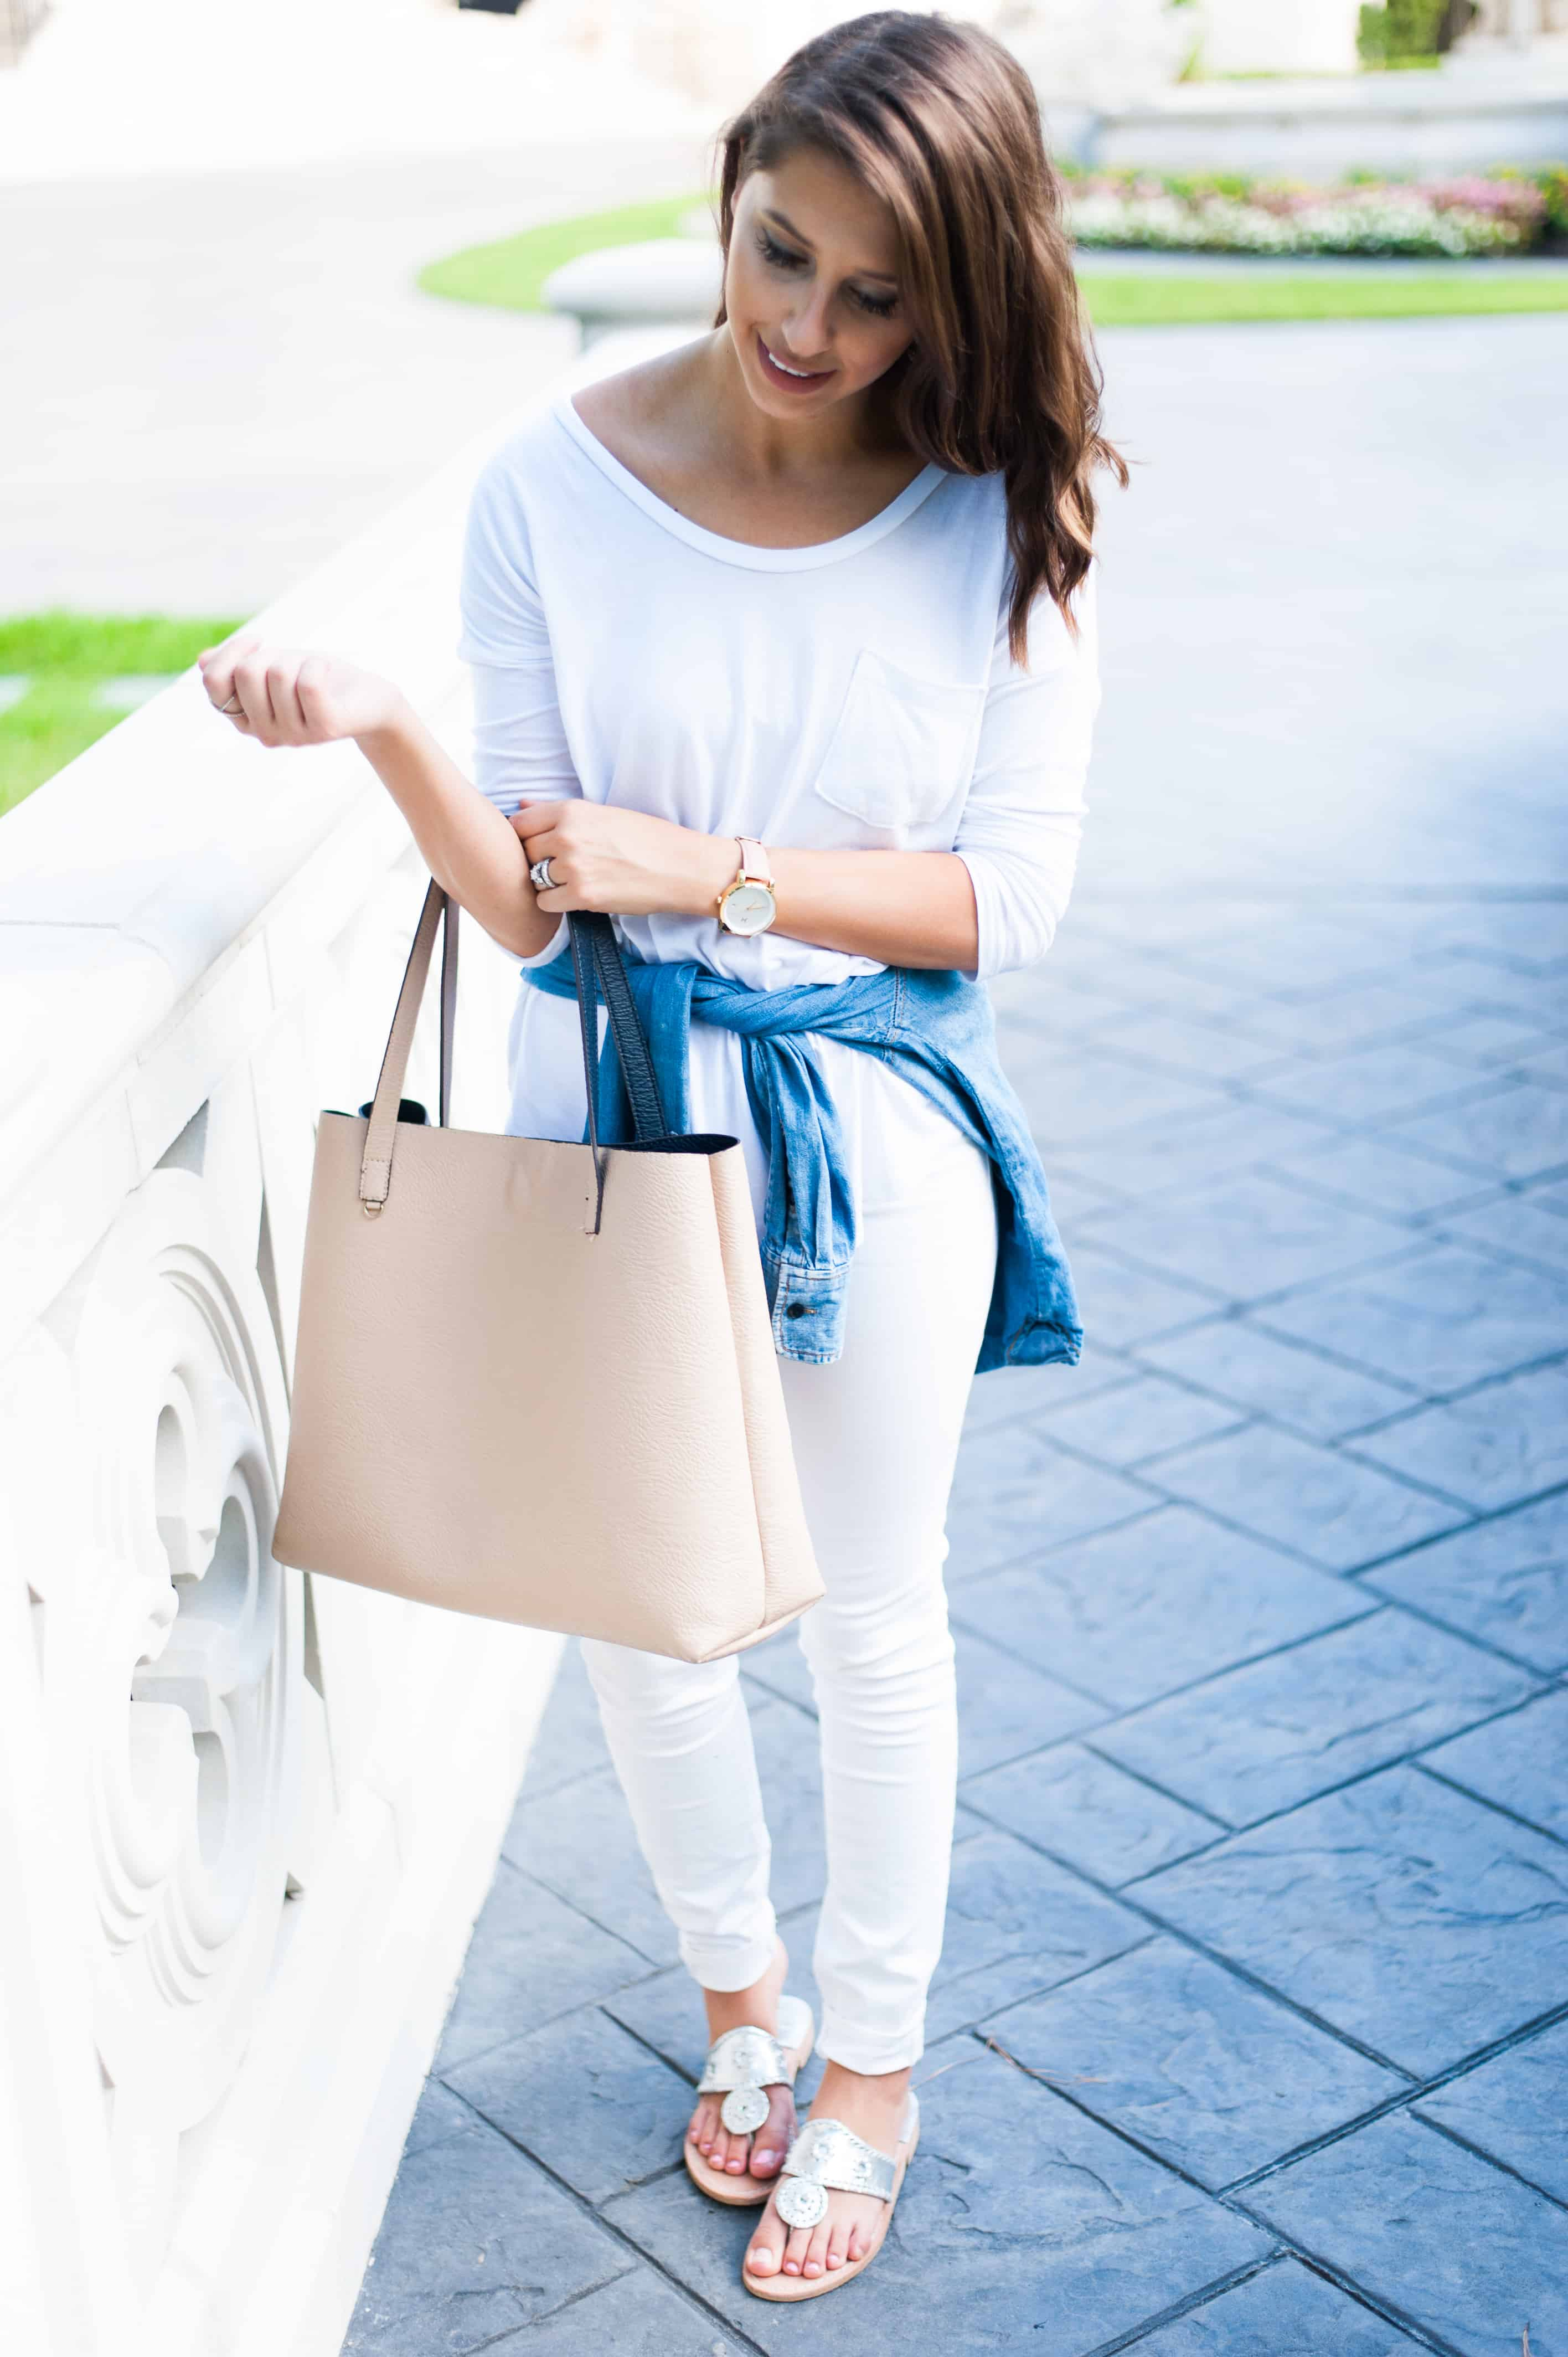 Dress Up Buttercup // A Houston-based fashion and inspiration blog developed to daily inspire your own personal style by Dede Raad   Casual Stroll